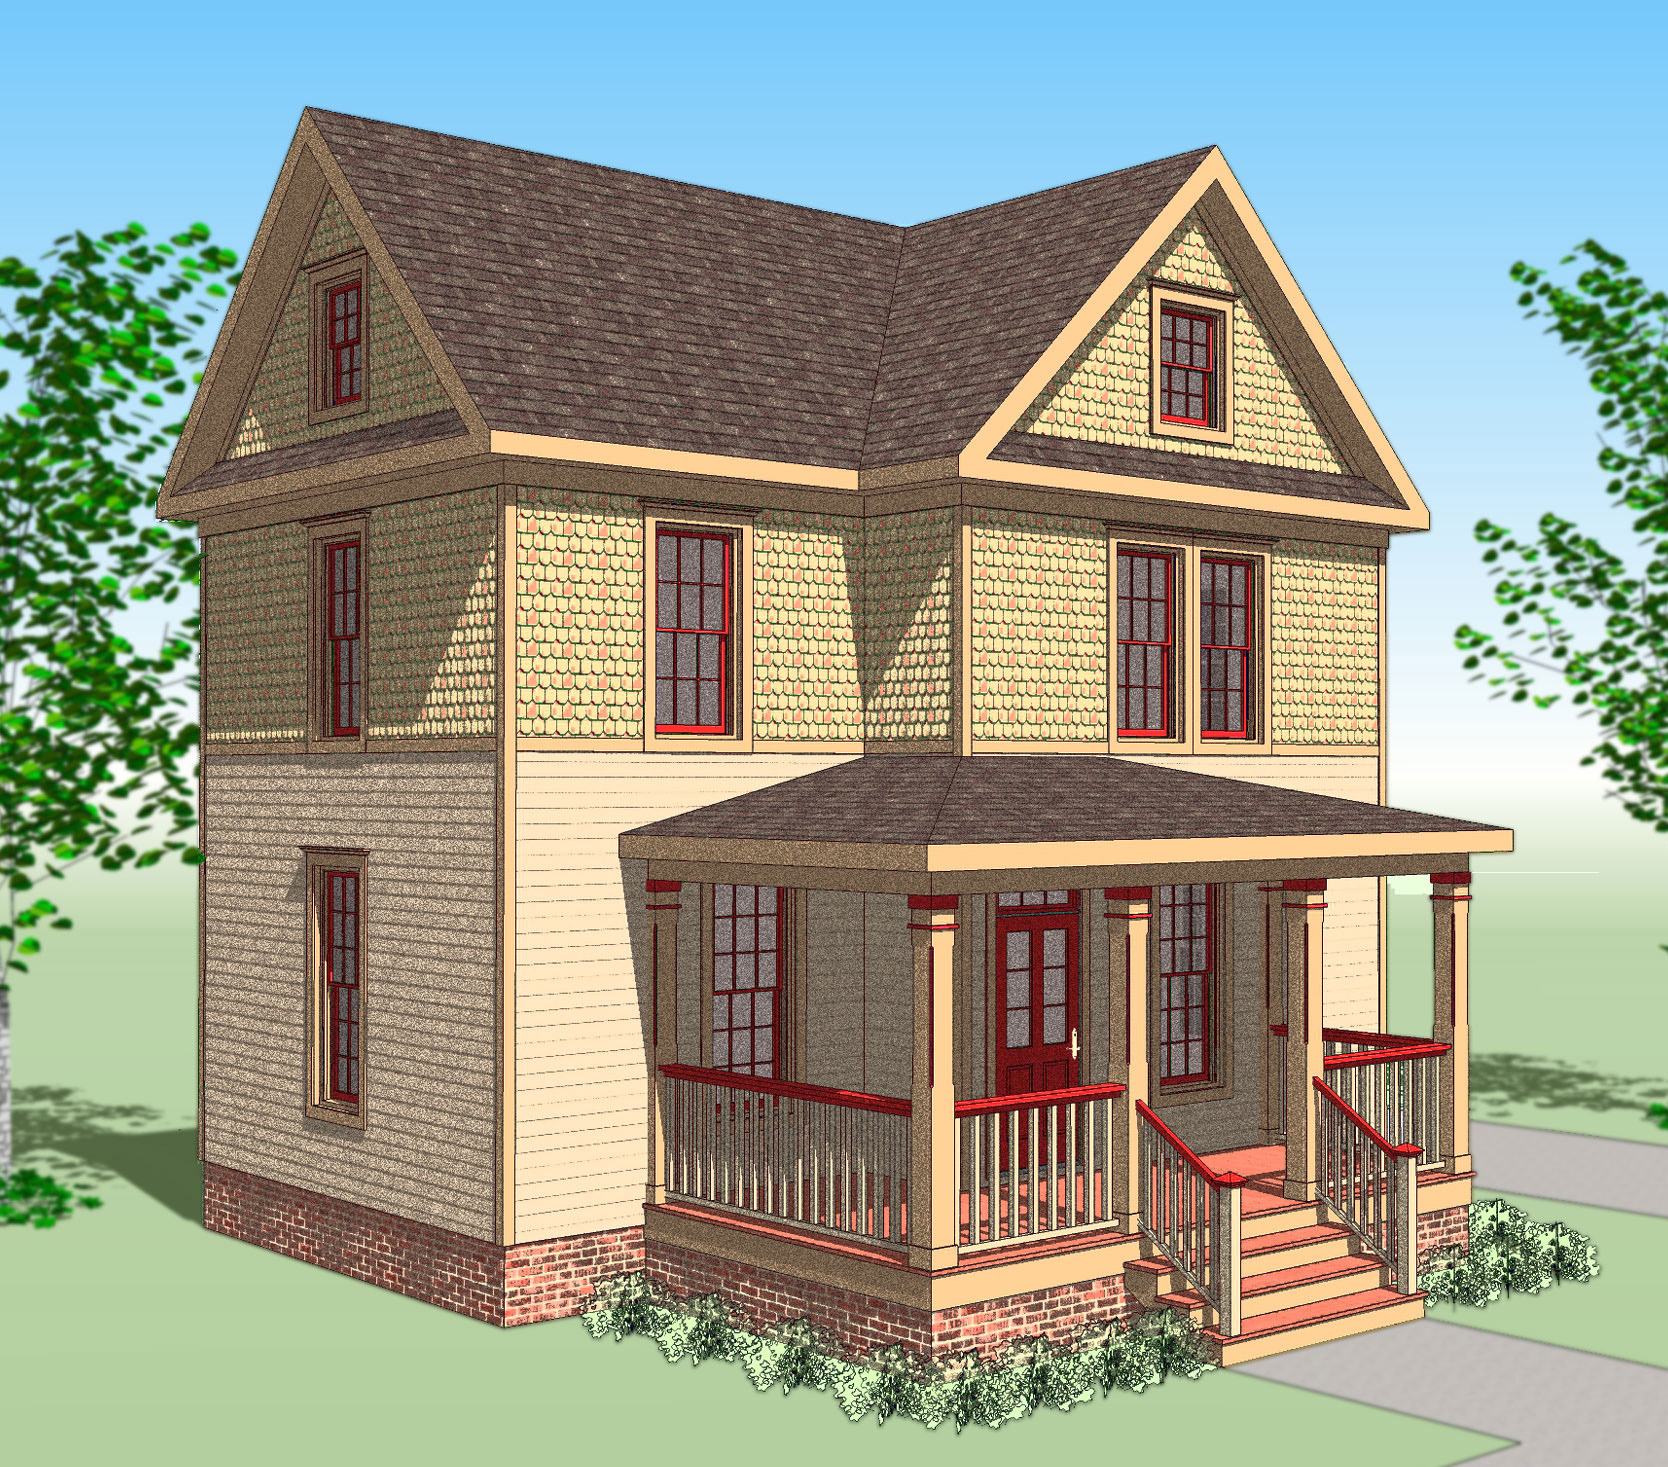 Compact victorian house plan 31516gf 2nd floor master for Original victorian house plans